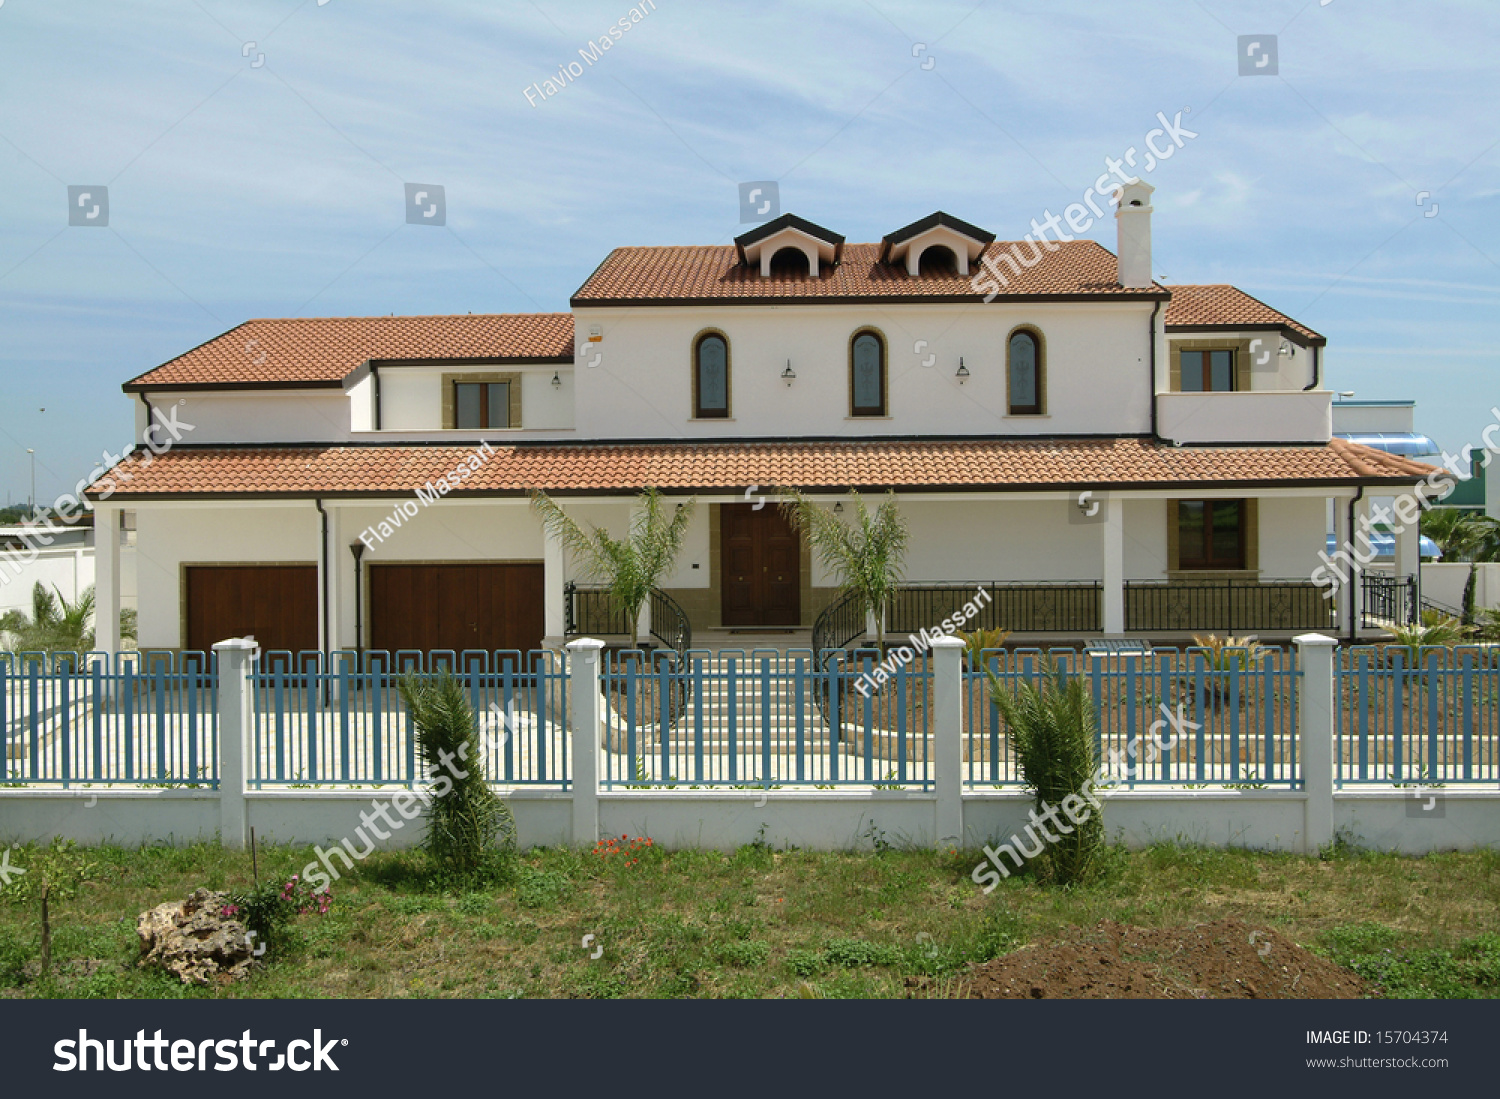 Italian country home stock photo 15704374 shutterstock for Italian country homes